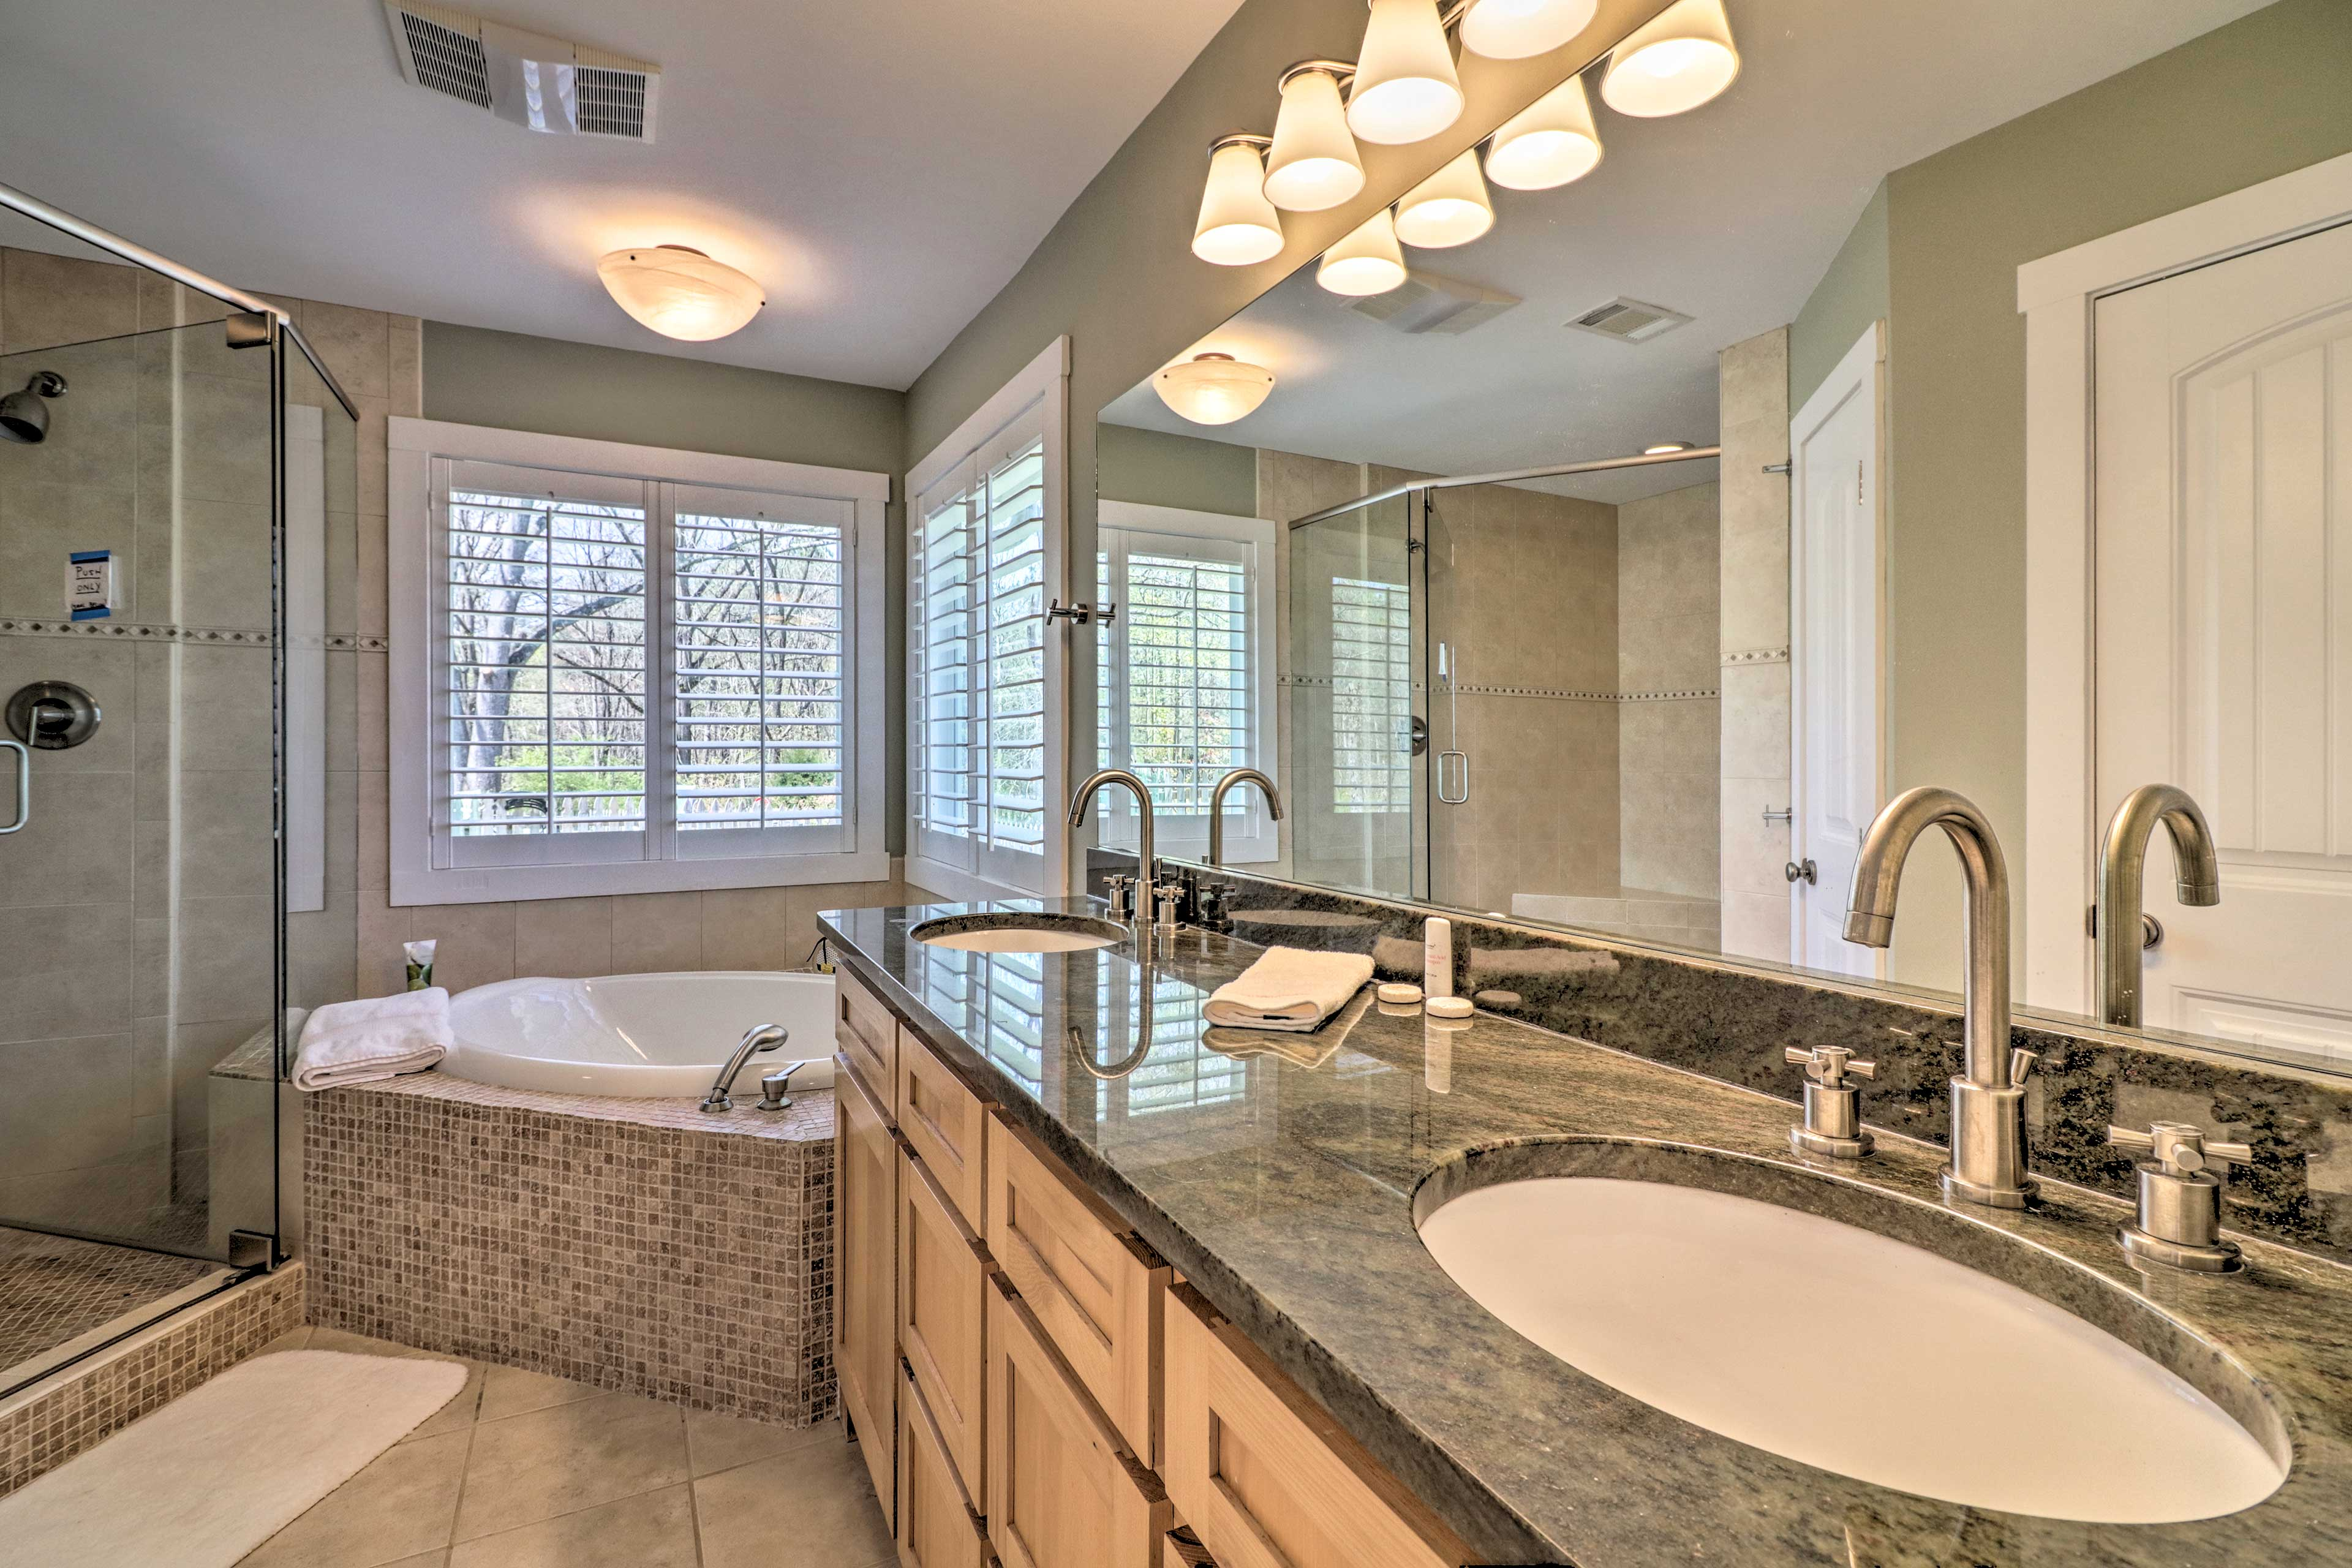 Dual sinks and a garden tub are just a couple of master bathroom highlights.